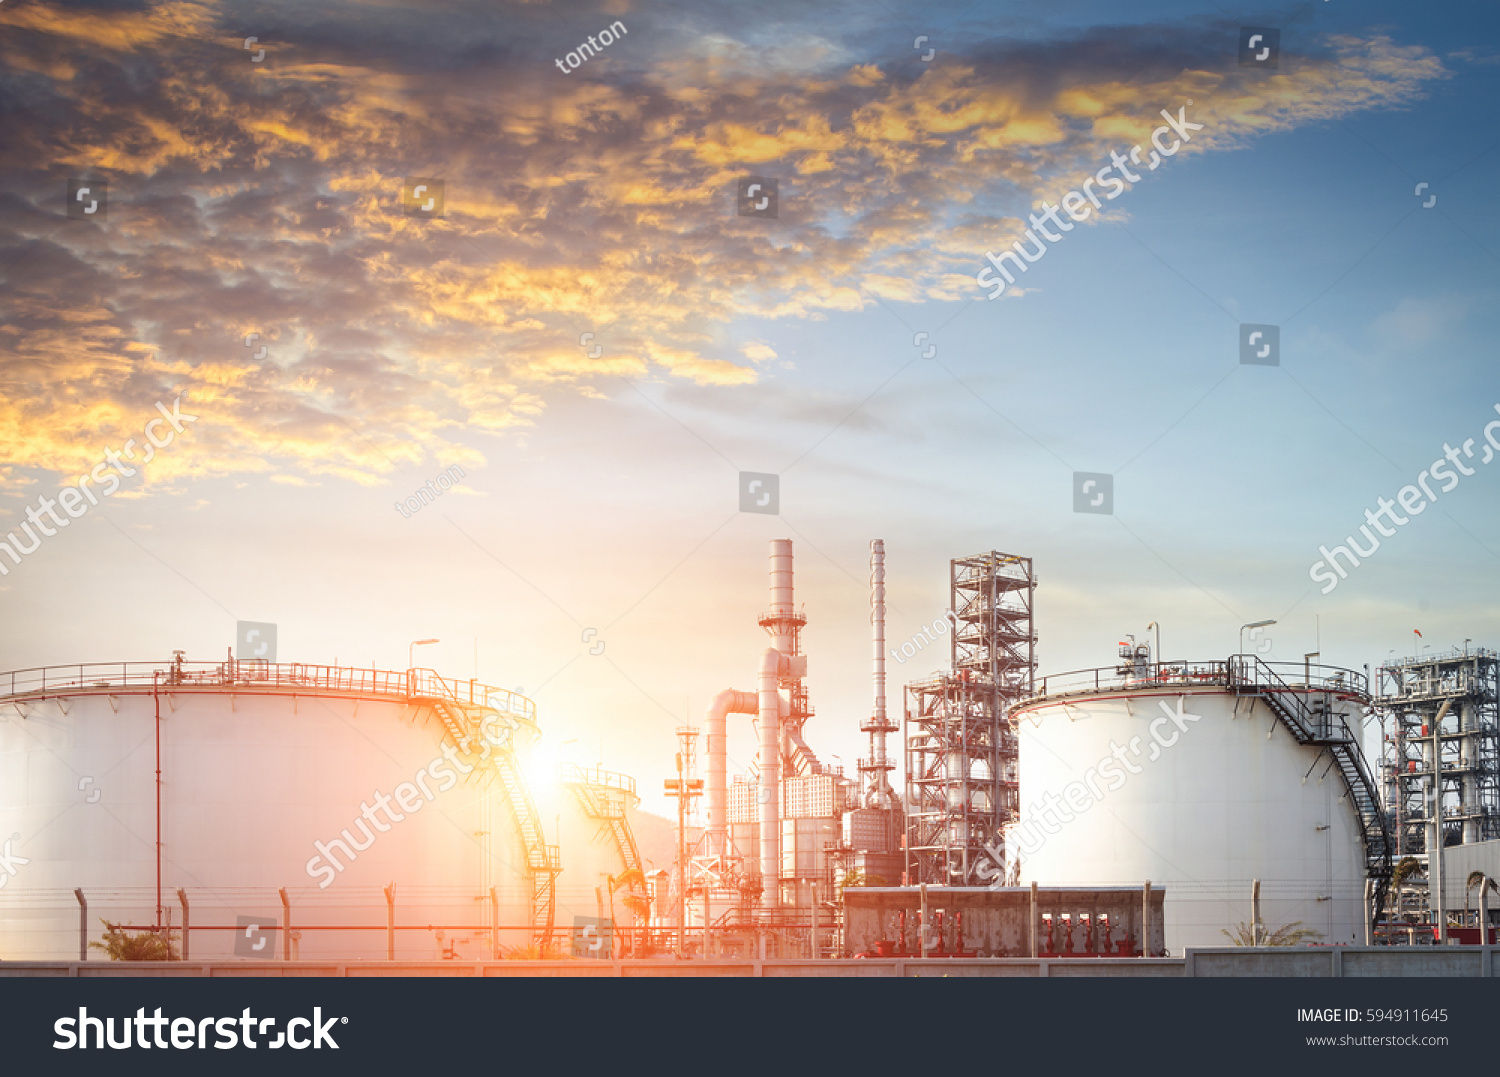 Oil Refinery Oil Industry Stock Photo 594911645 - Shutterstock